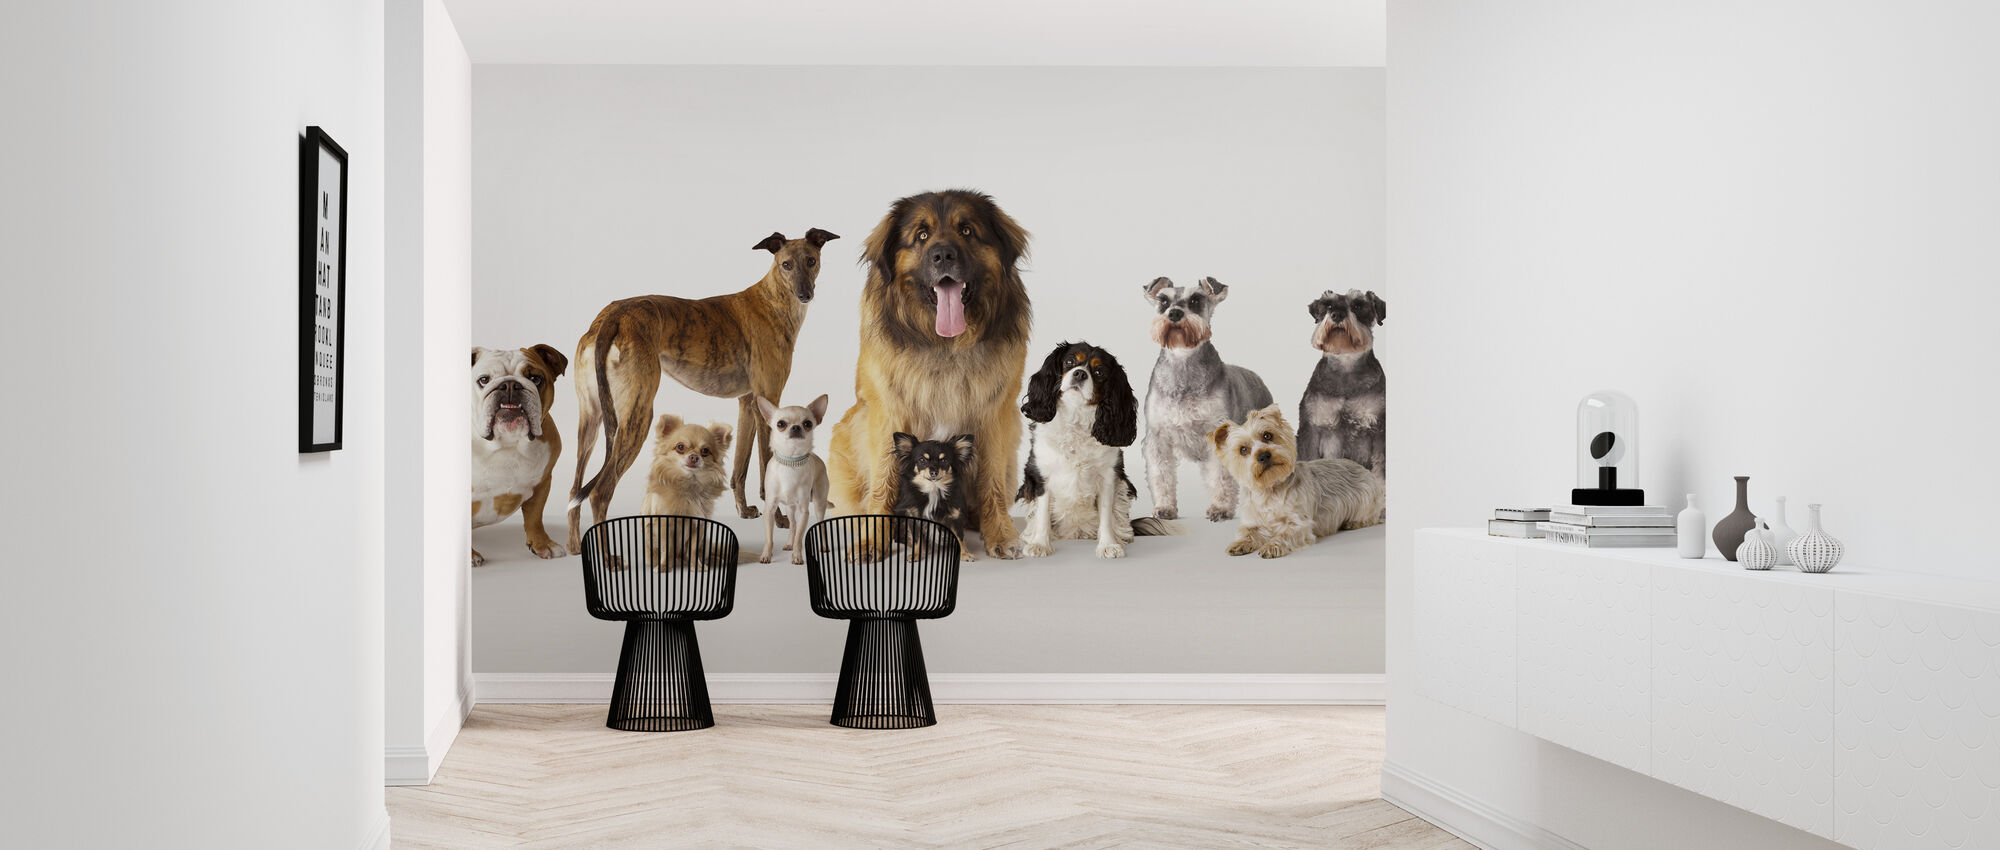 Group Portrait of Dogs - Wallpaper - Hallway